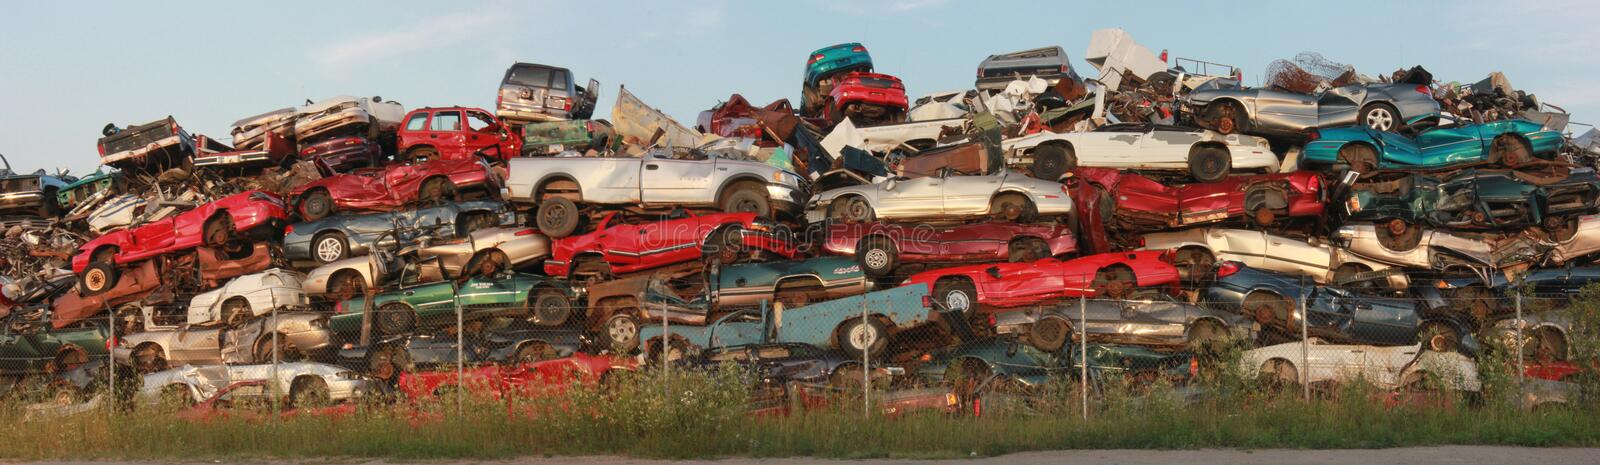 Scrap Metal Automobiles royalty free stock photos